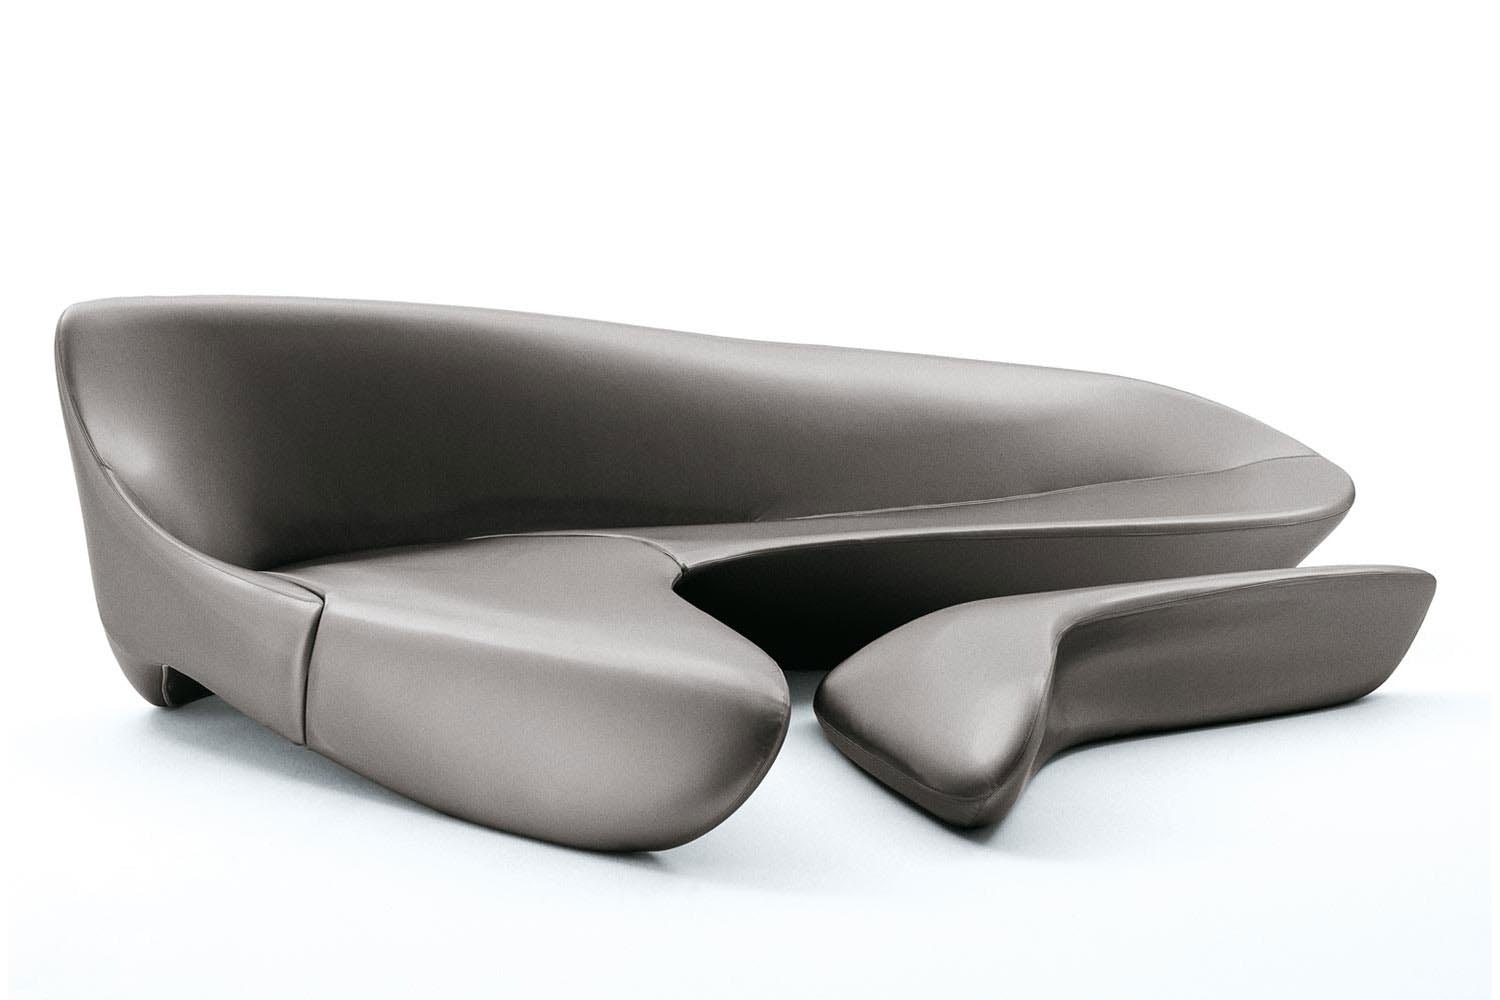 Moon System Sofa by Zaha Hadid for B&B Italia